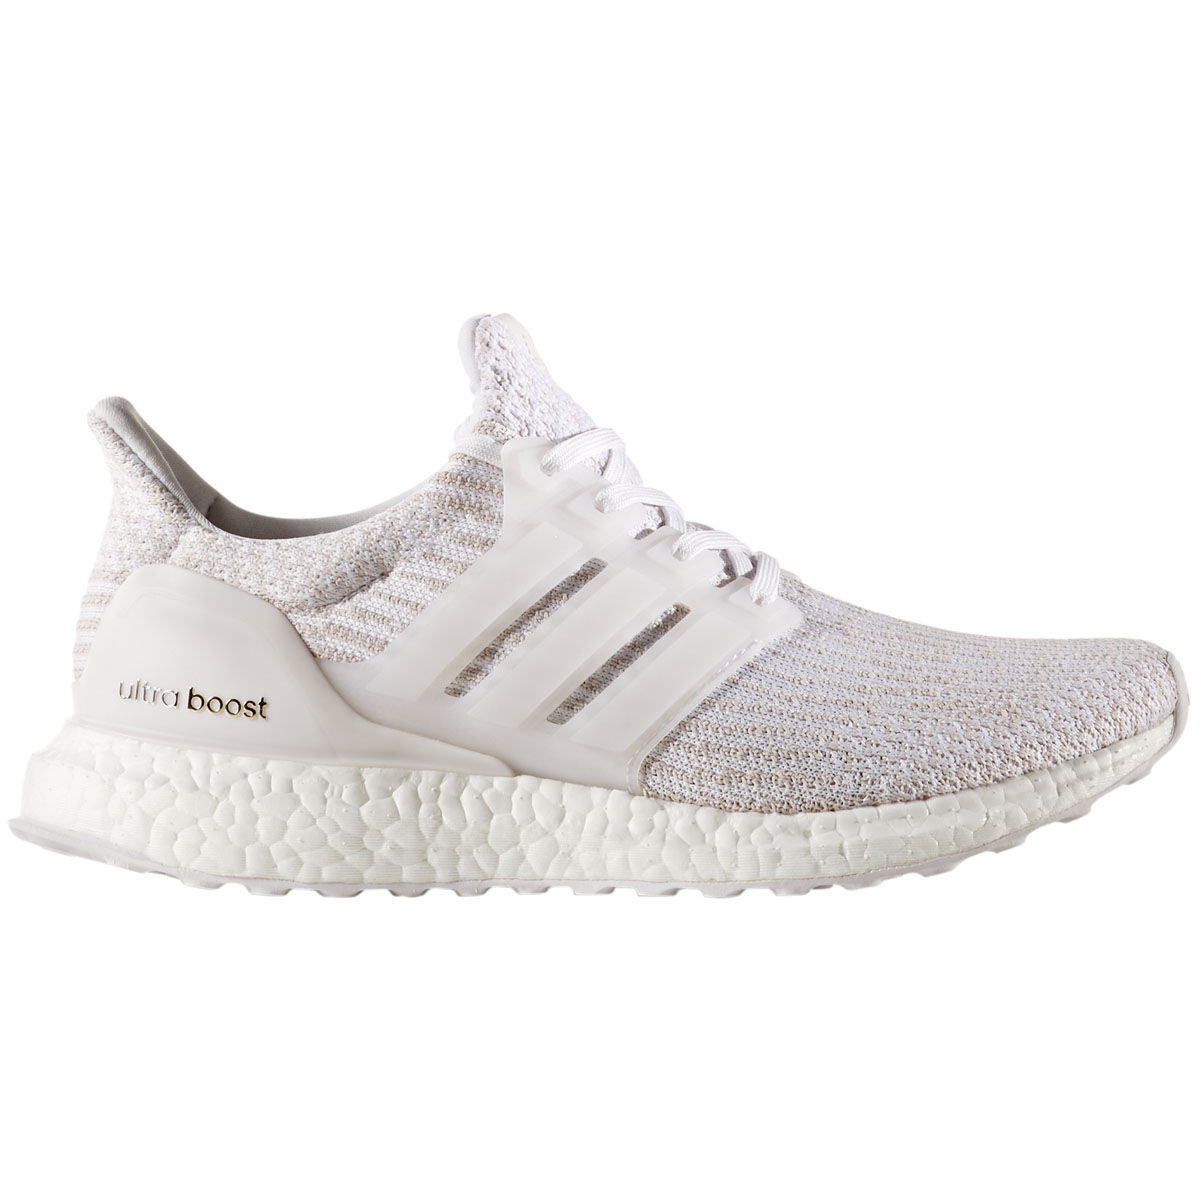 adidas ultra boost damen schuhe pearl karstadt online shop. Black Bedroom Furniture Sets. Home Design Ideas